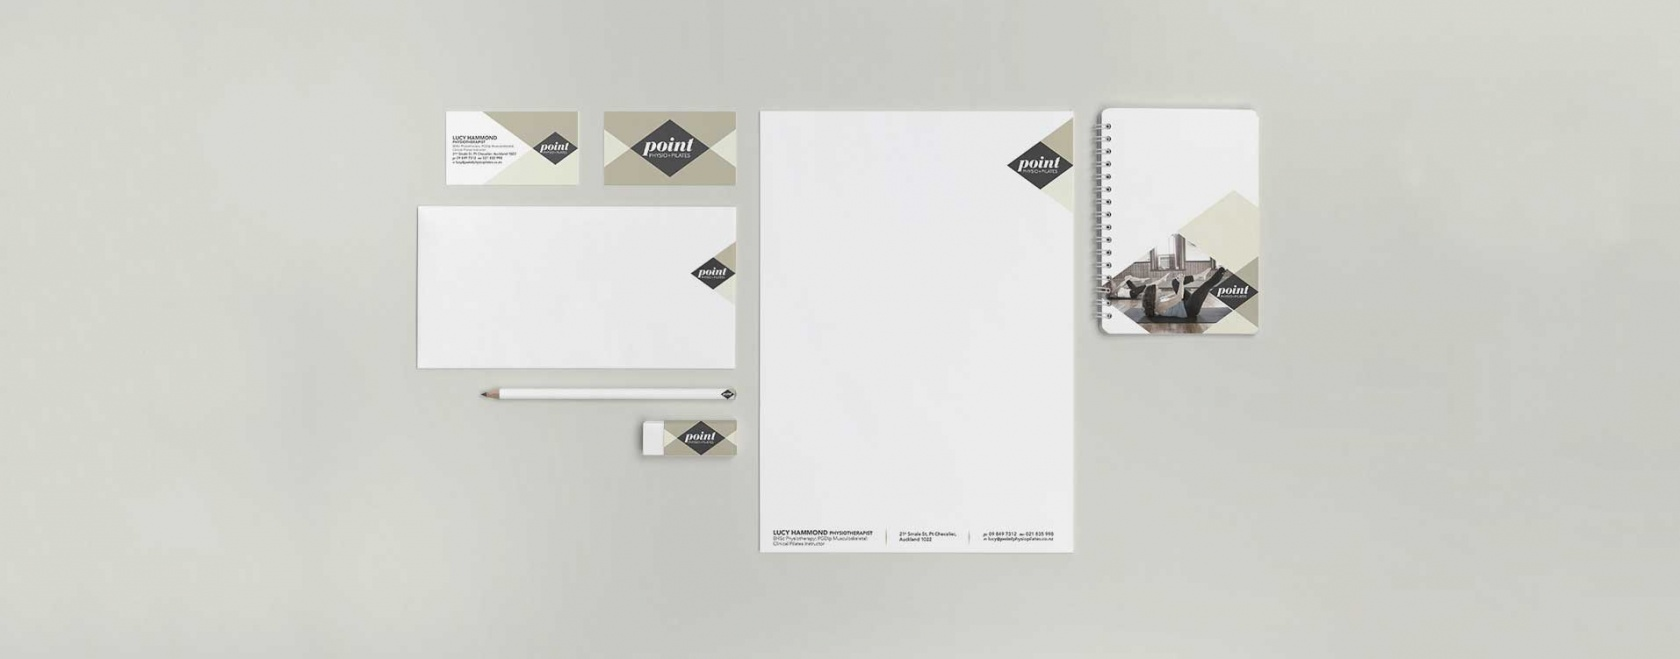 project-ppp-stationery